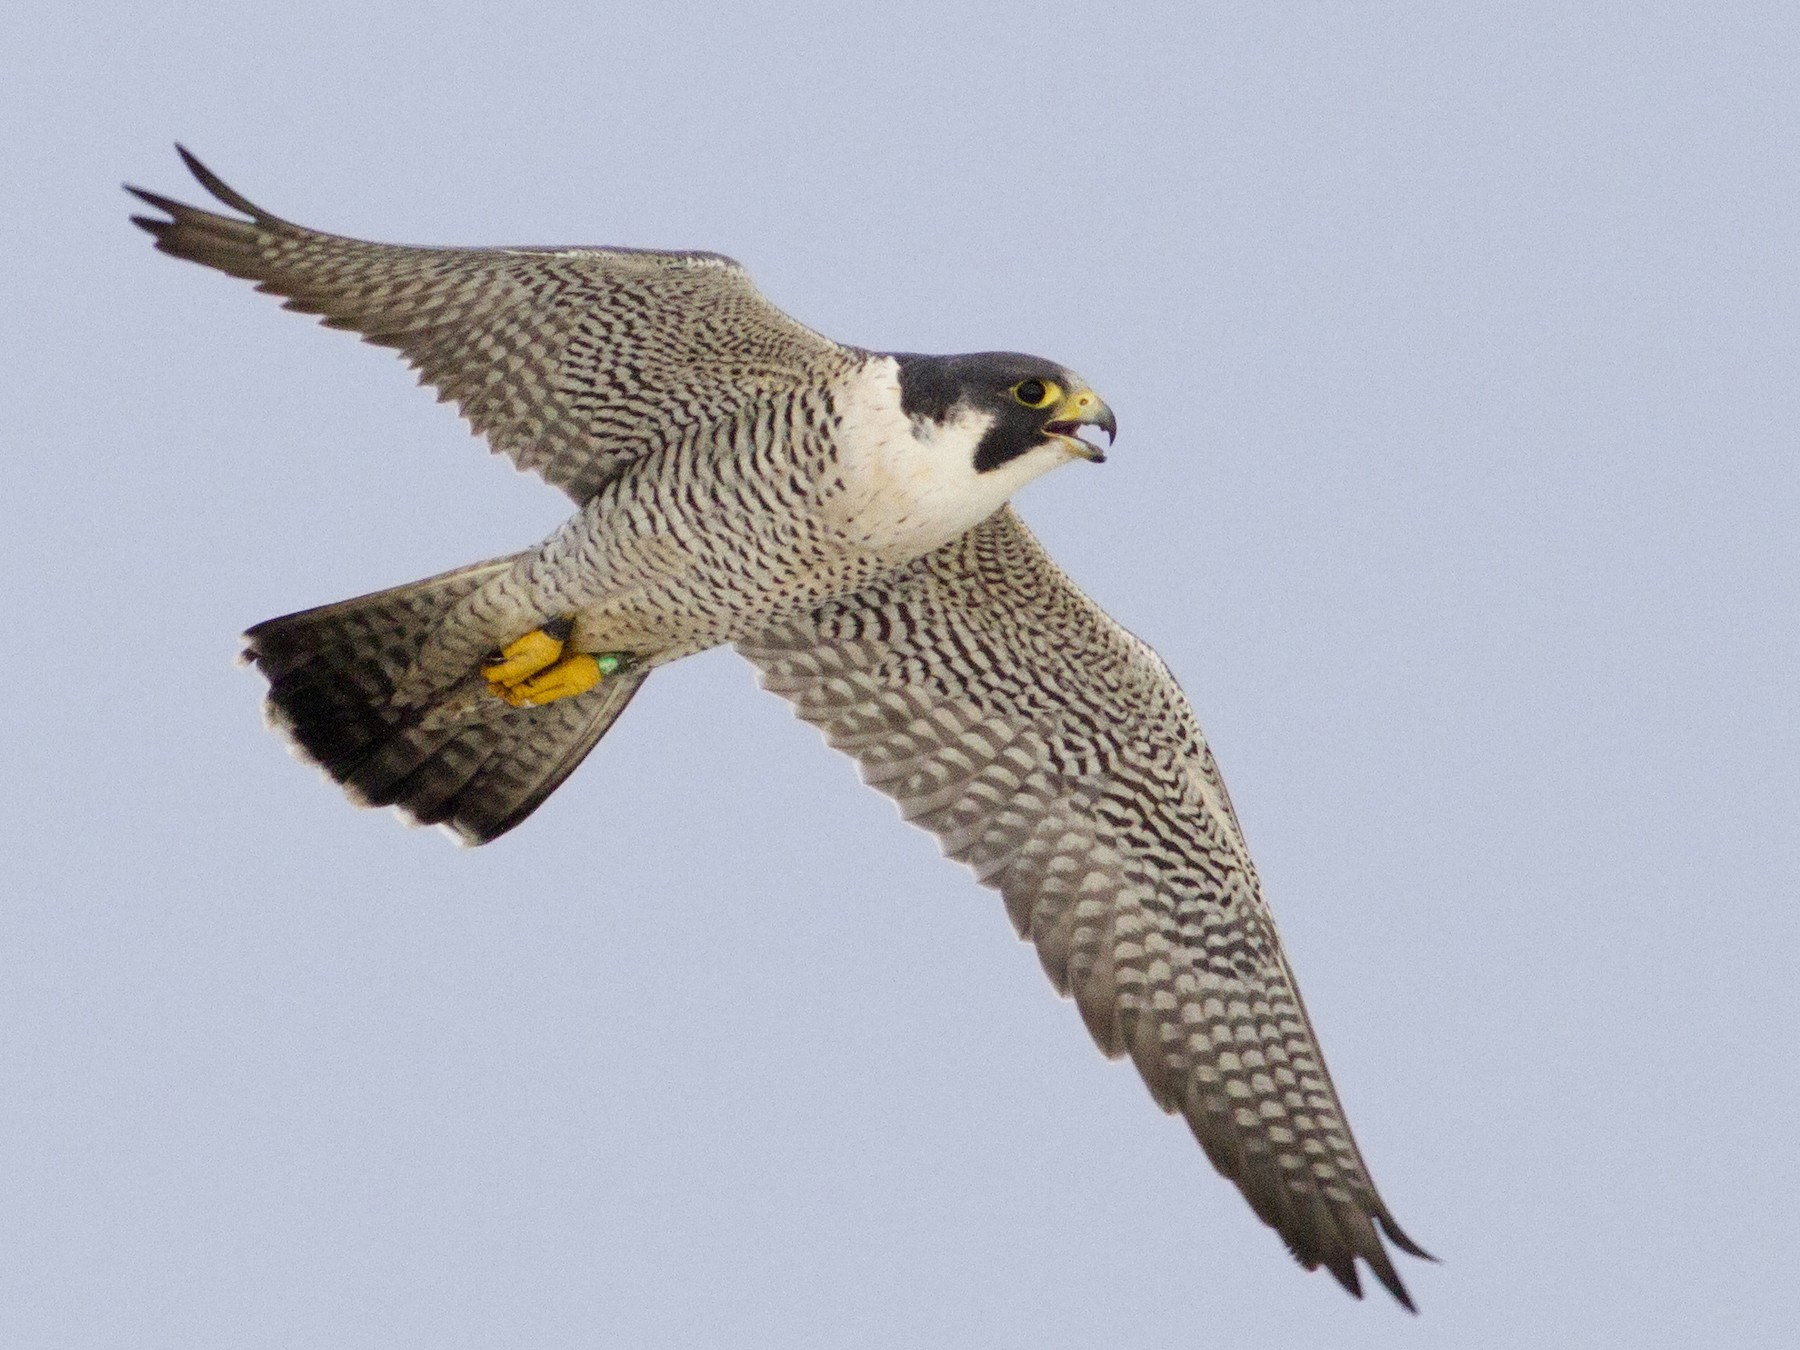 Peregrine Falcon - Samuel Paul Galick